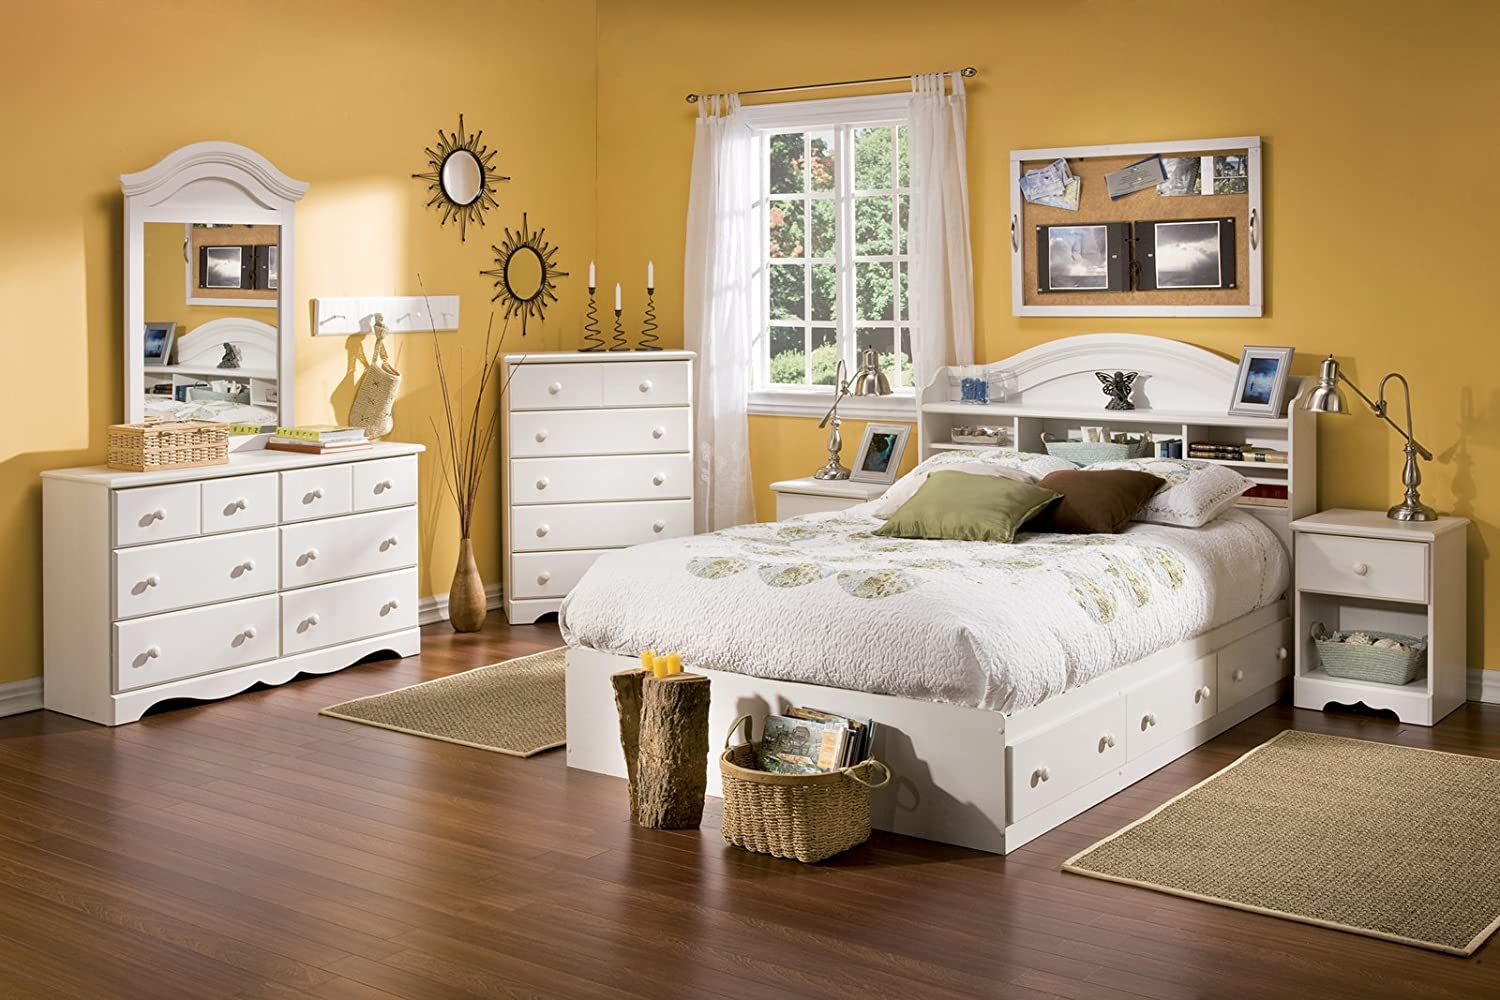 white full bedroom set. Amazon com  South Shore Summer Breeze Collection 6 Drawer Dresser White Wash Kitchen Dining